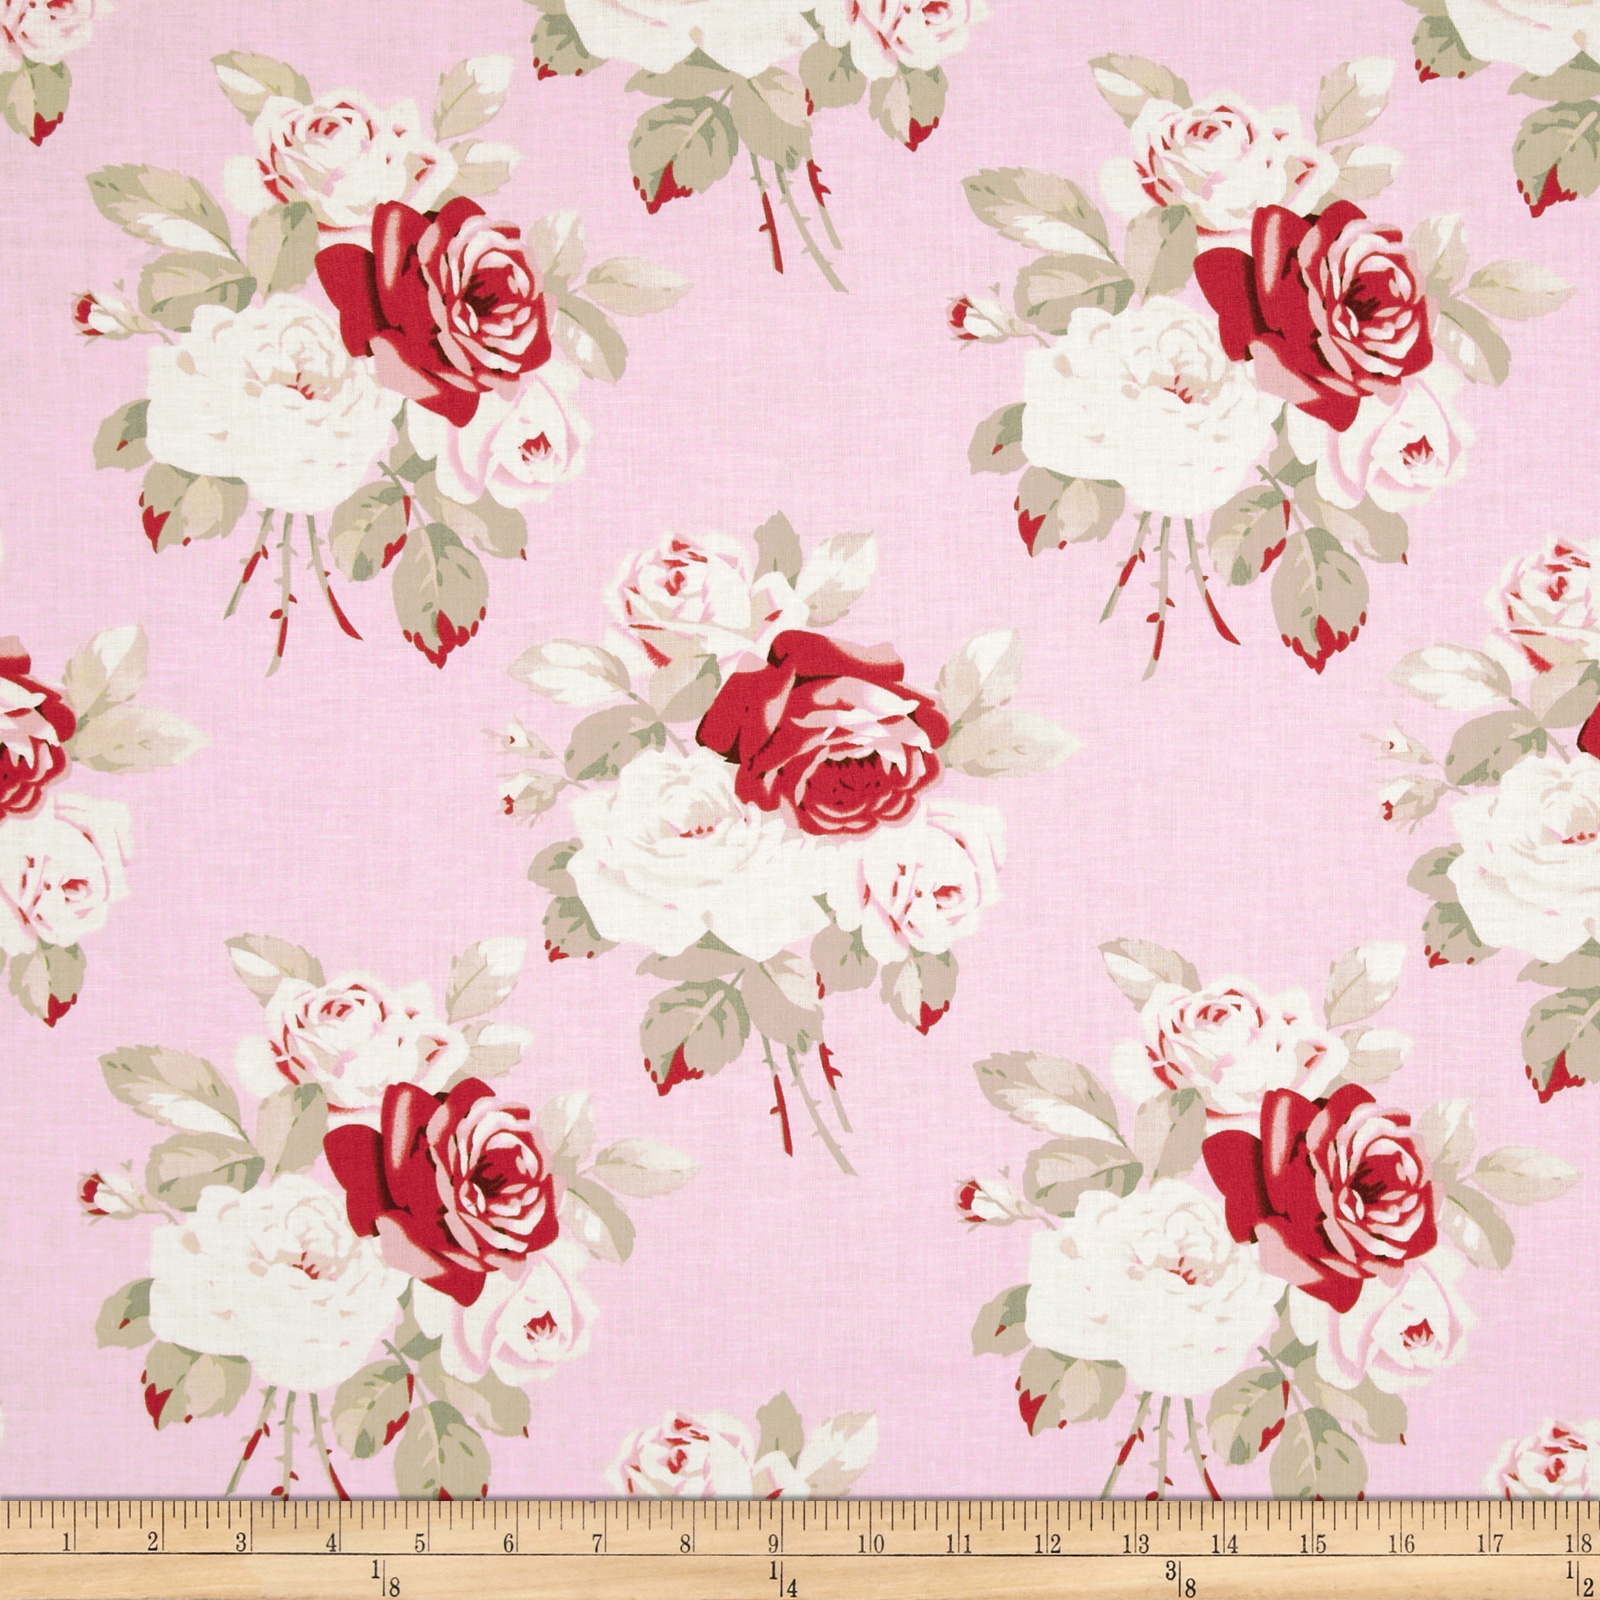 Petal Large Antique Roses Pink Fabric